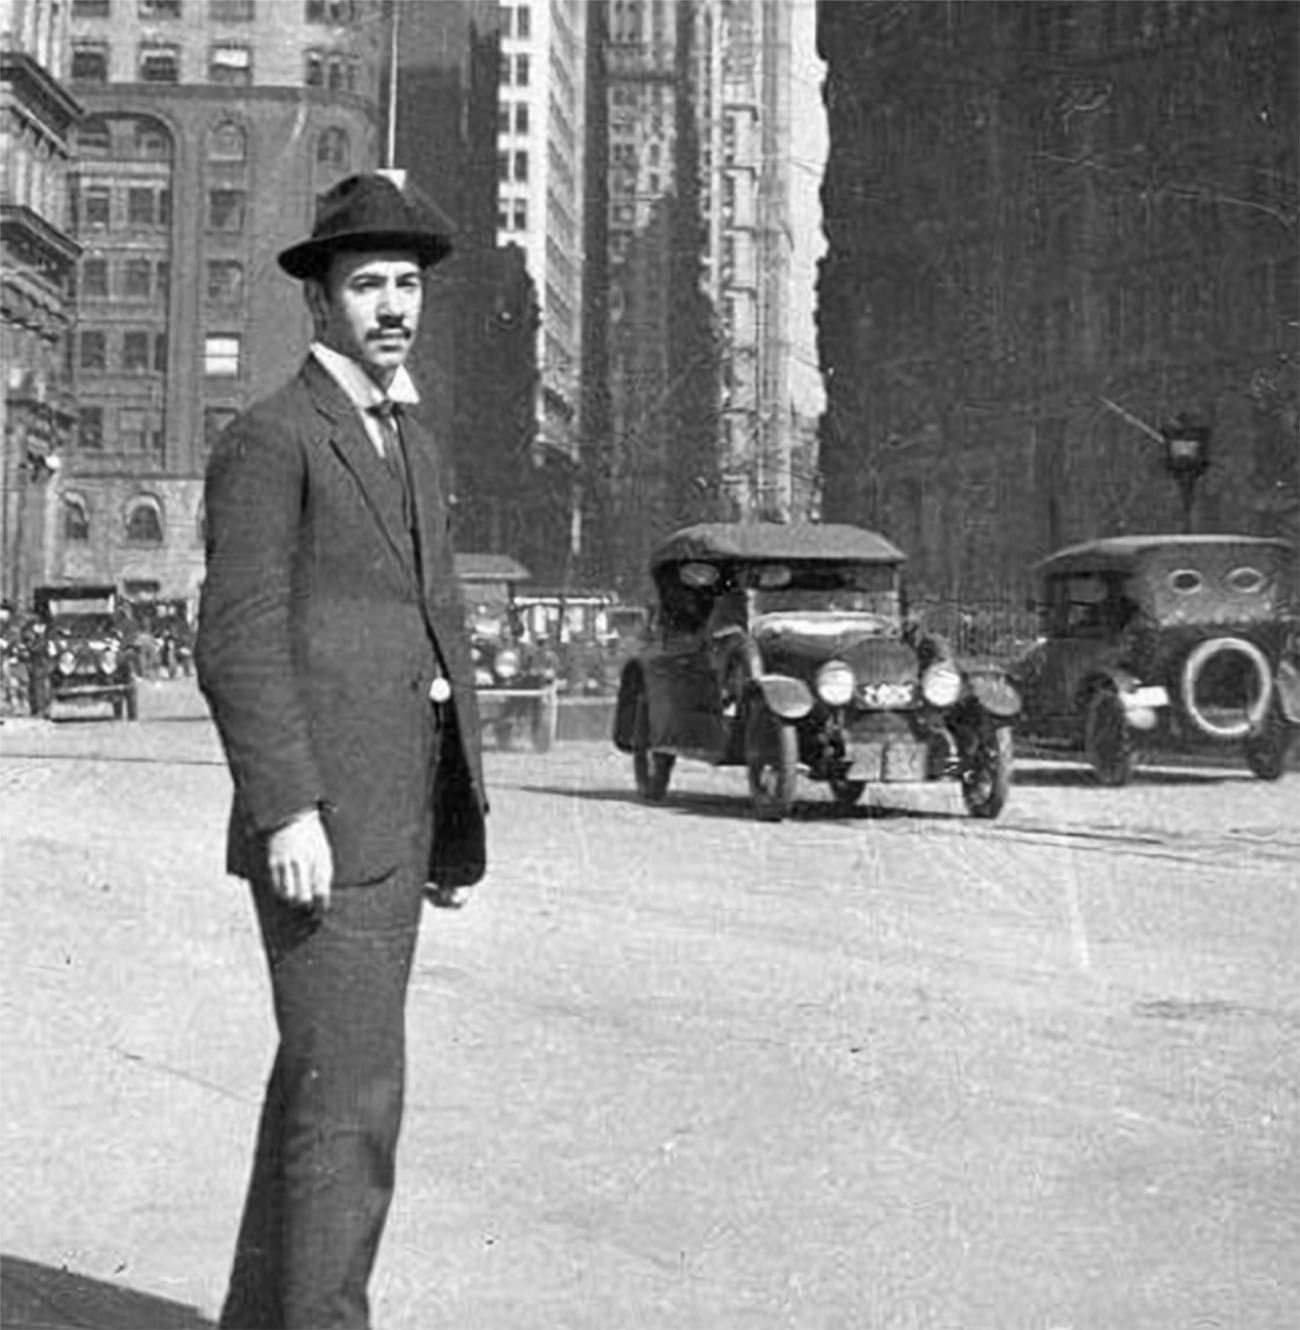 Igor Sikorsky in New York City, 1919.